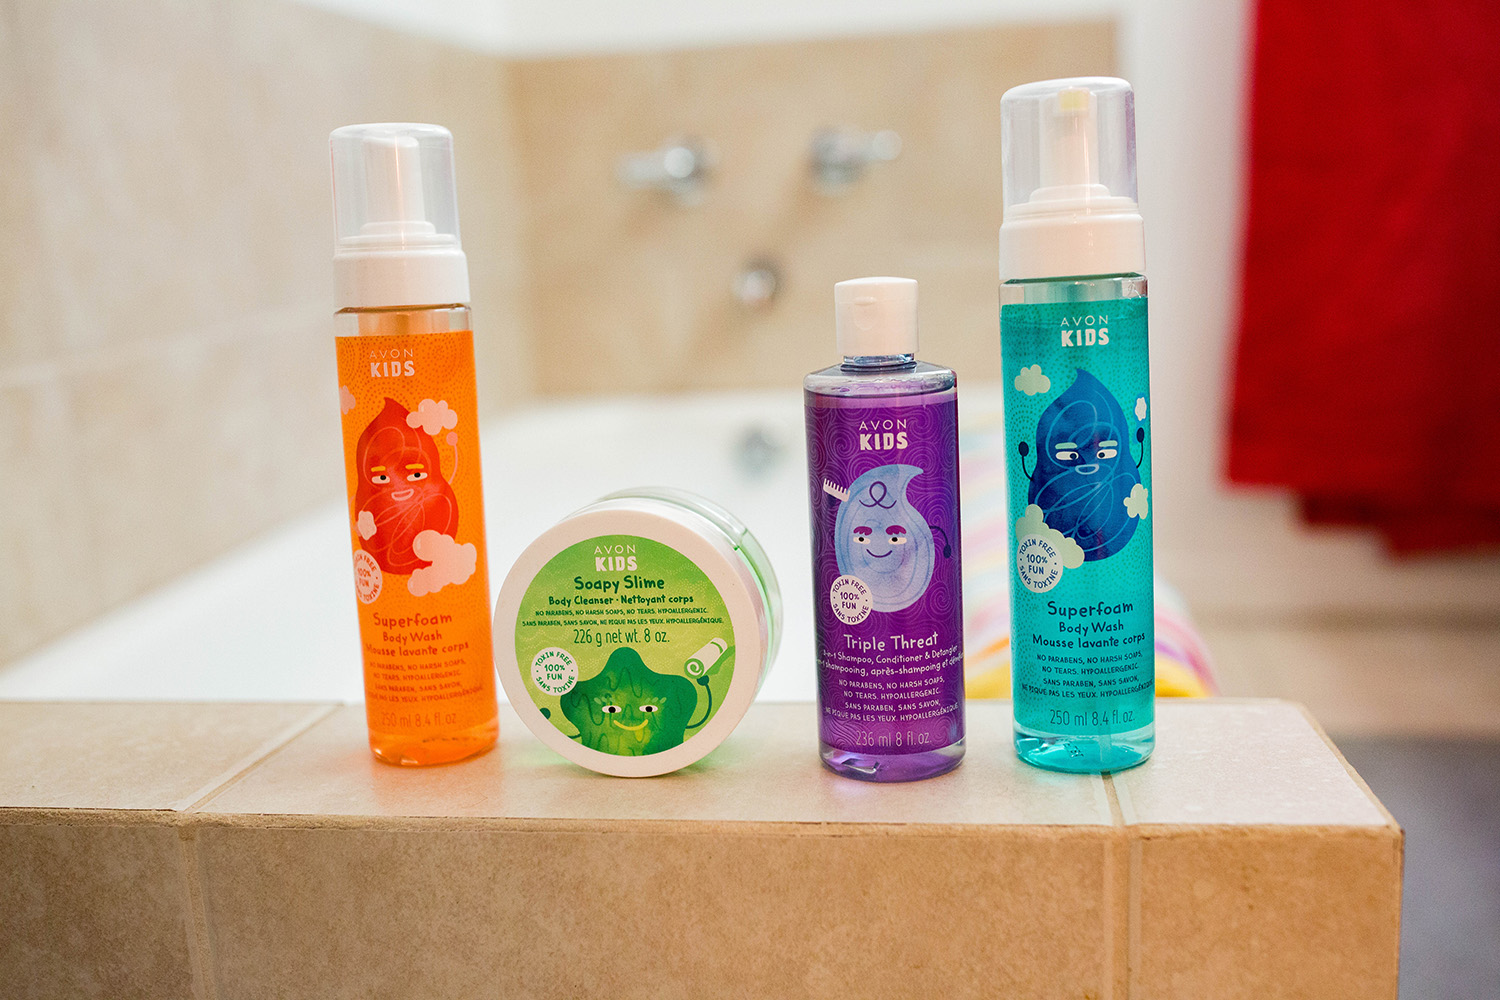 Is Bath Time Only For Babies? Why we still do bath time as part of our evening routine, accompanied by our favorite new paraben free products from Avon Kids.